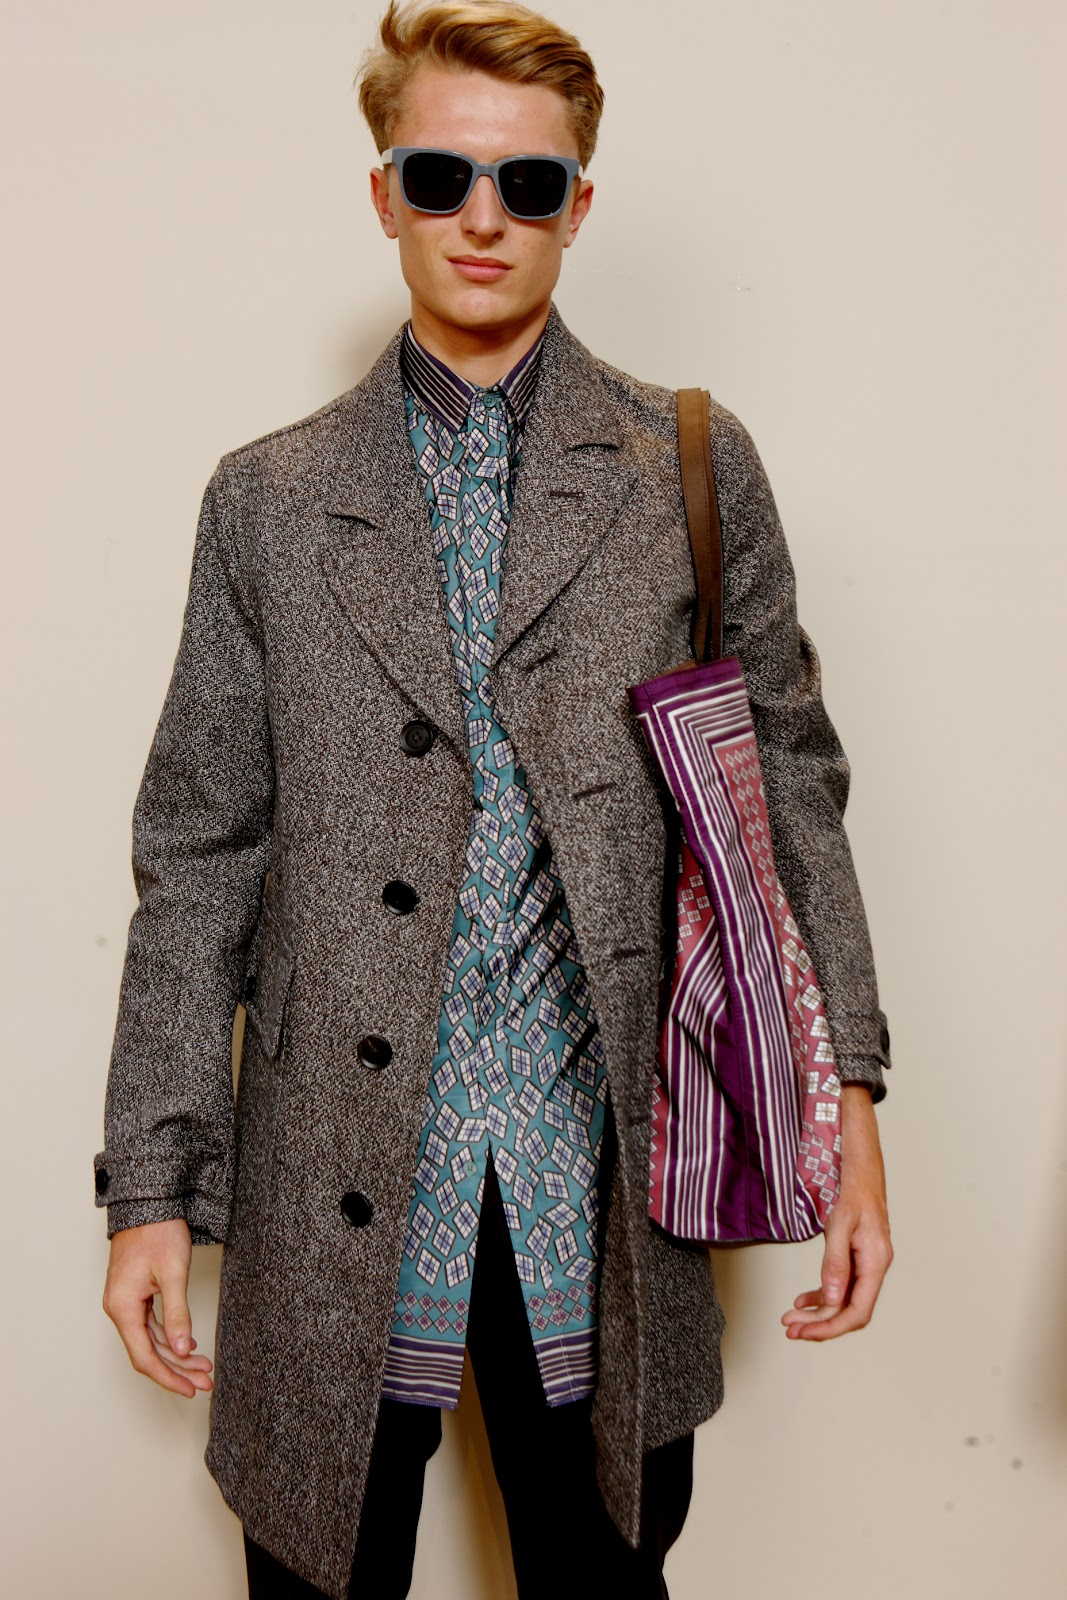 00o00 london menswear blog fashion style Burberry Prorsum Spring Summer 2013 SS2013 George Craig Rob Pryor and Roo Panes